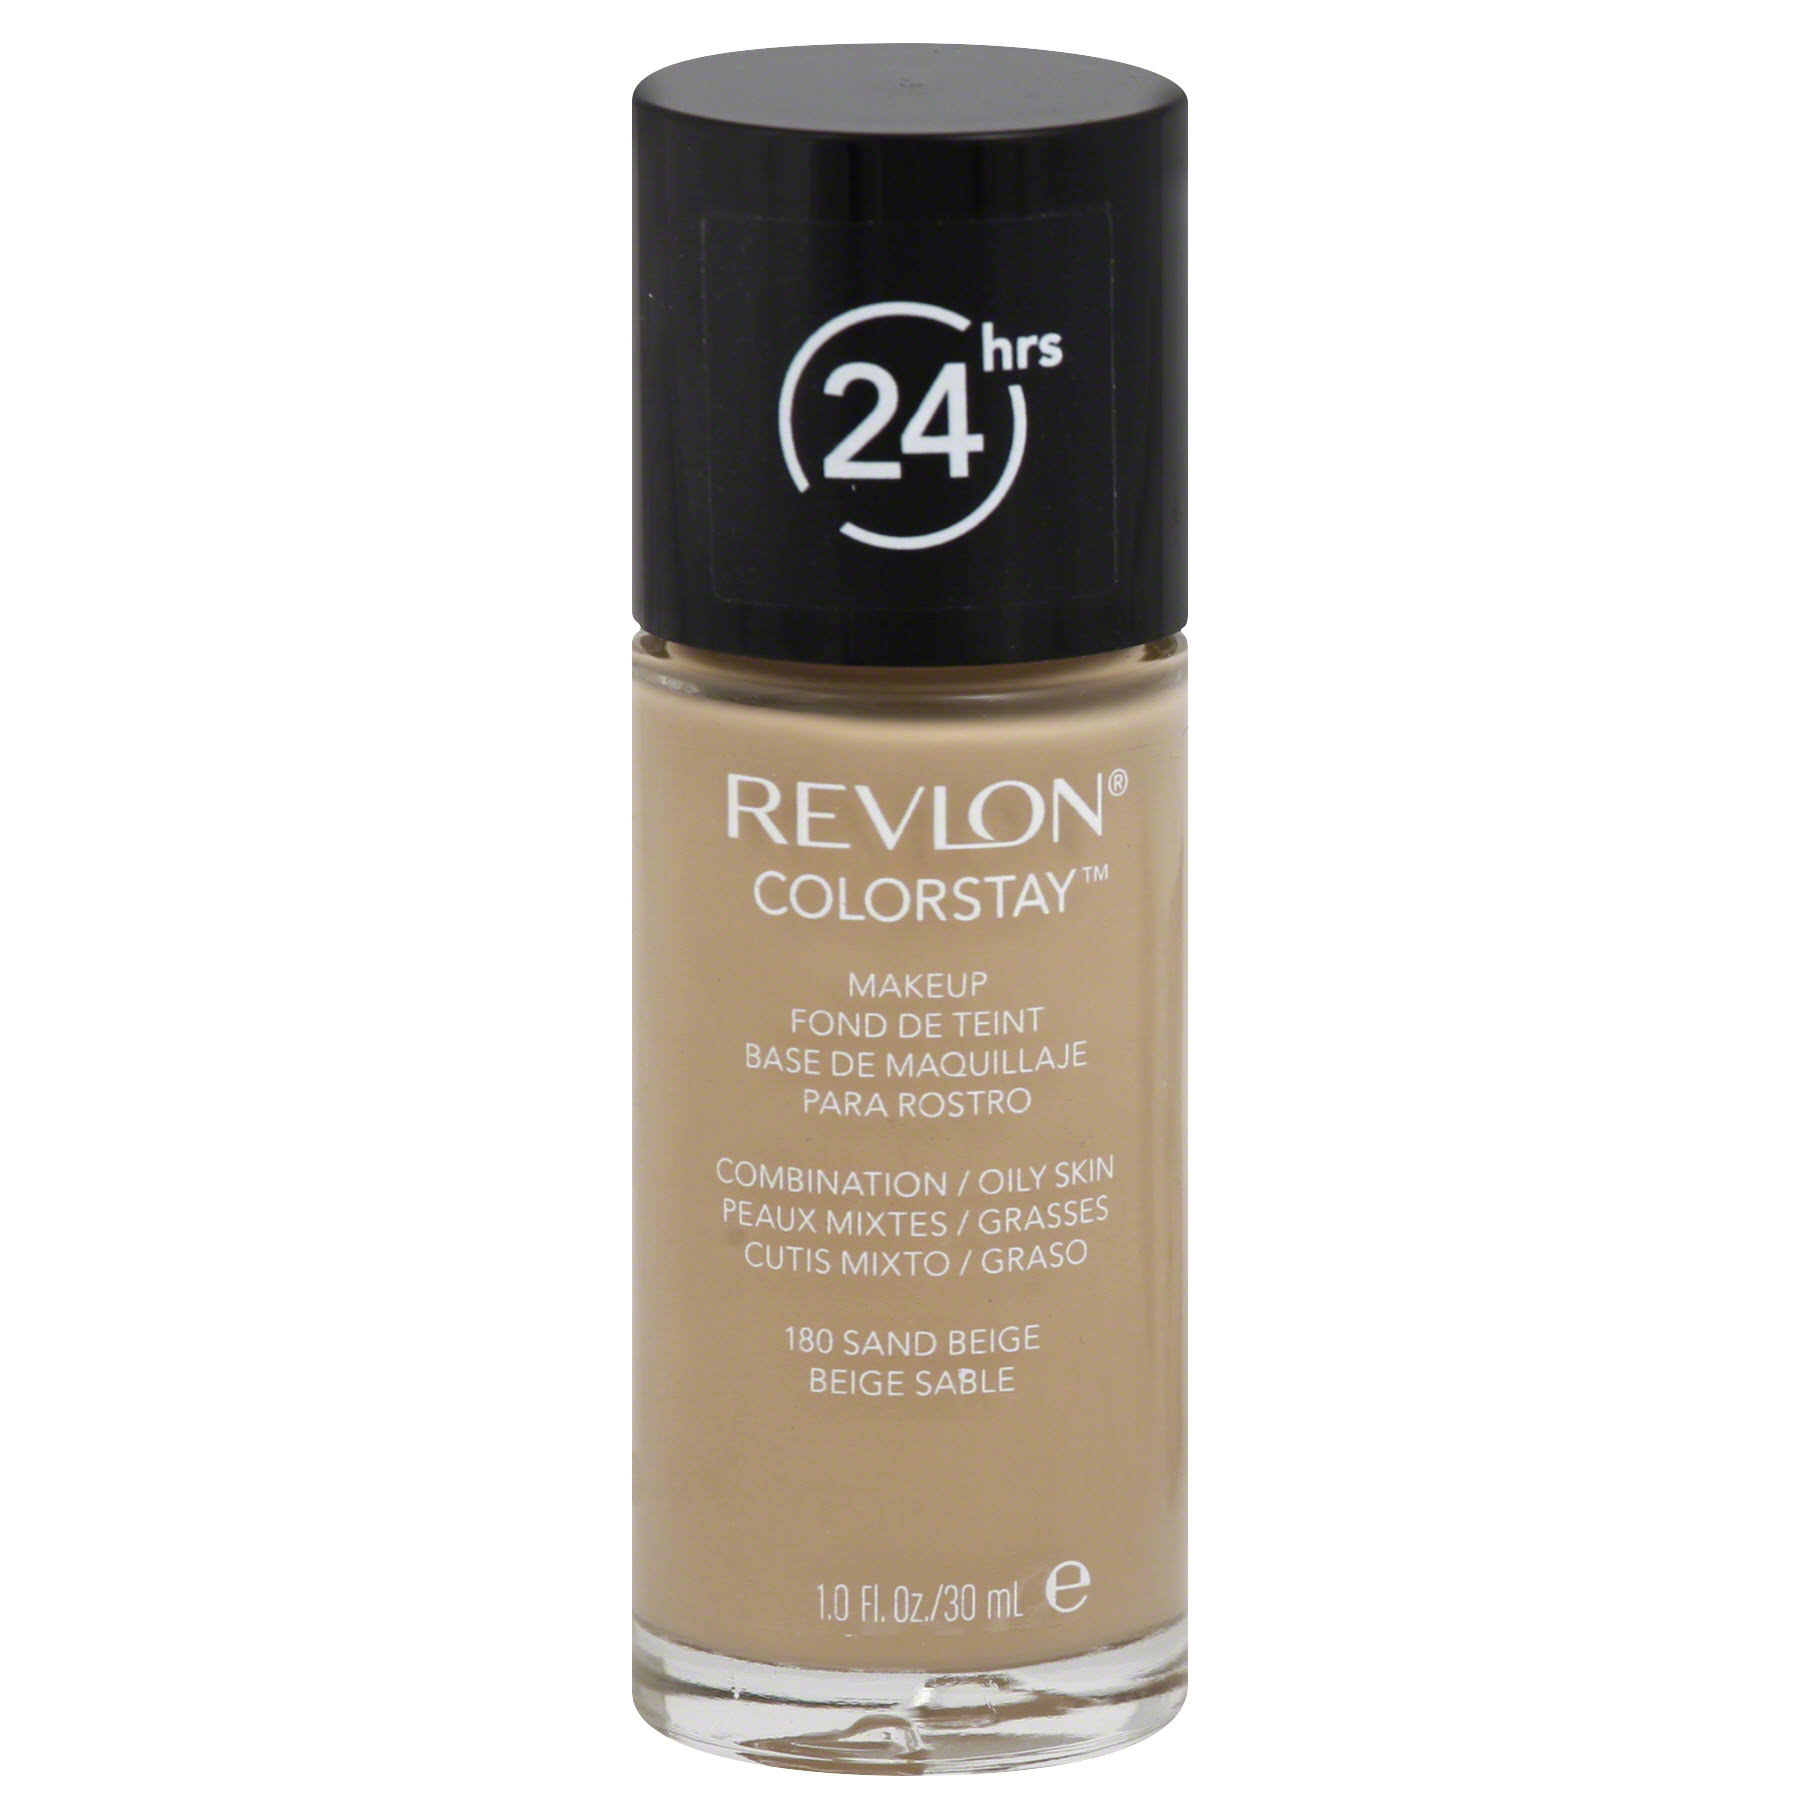 Revlon Colorstay Makeup Foundation for Combination or Oily Skin - Sand Beige